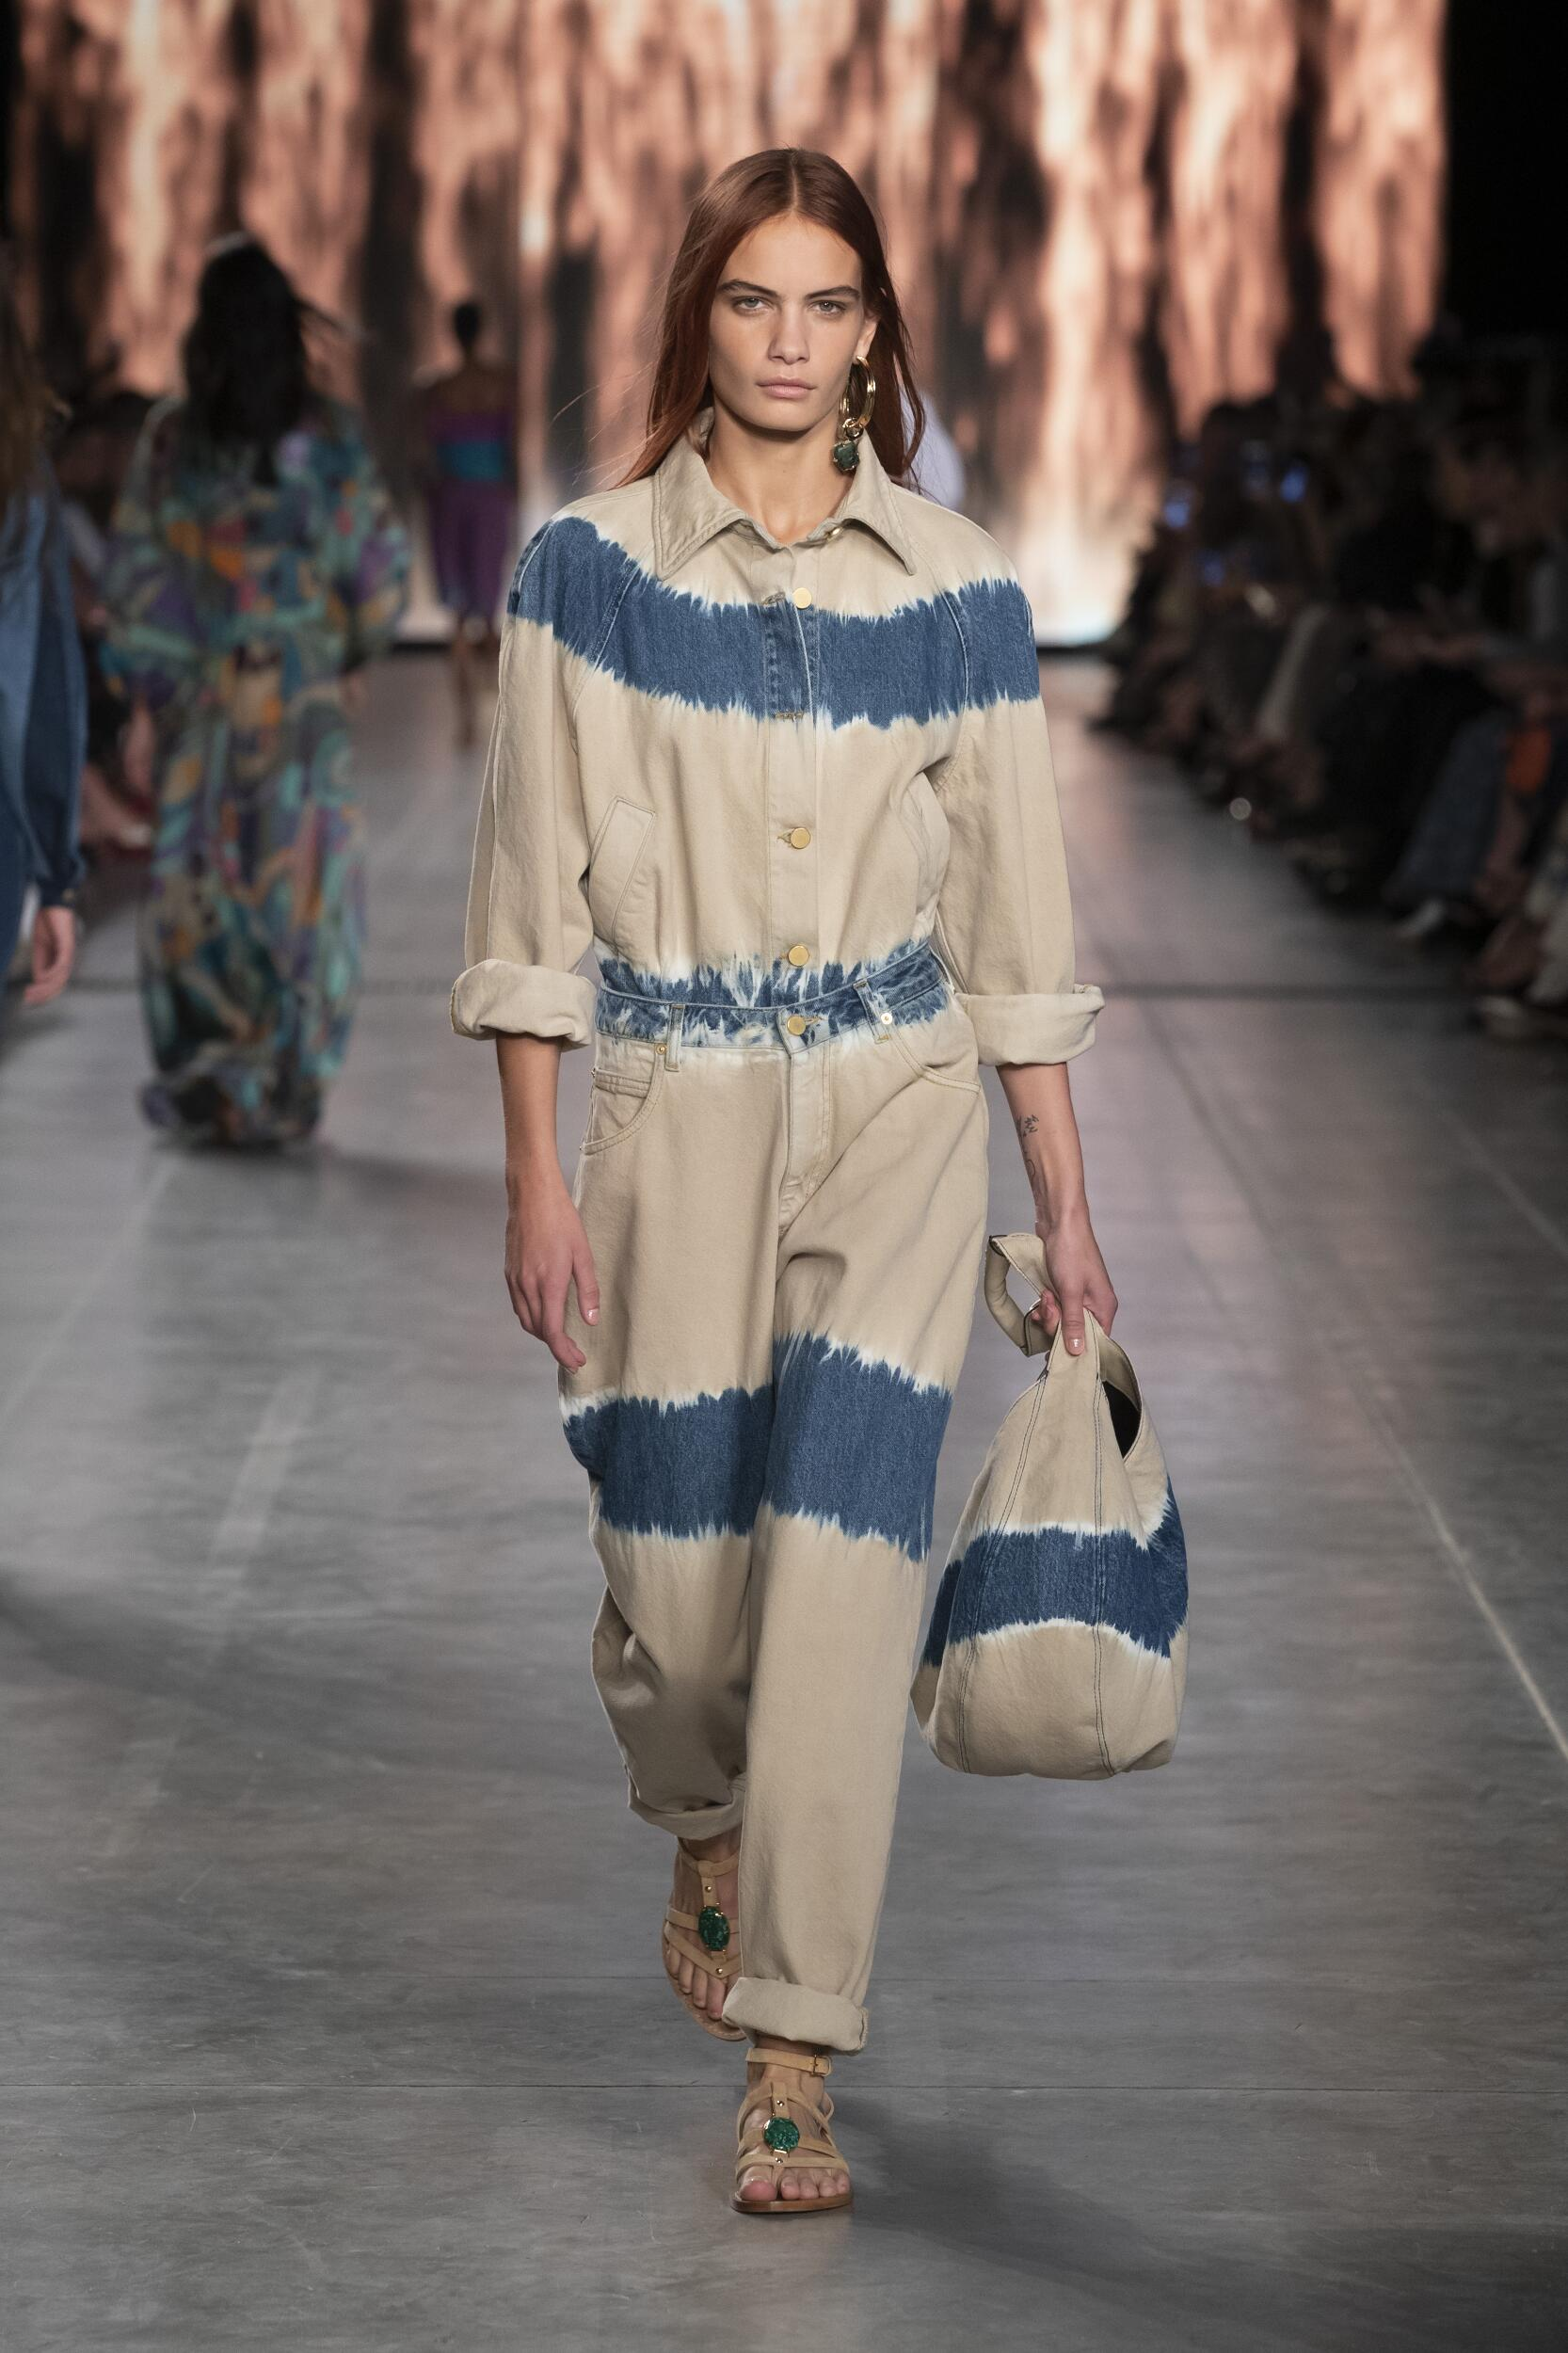 Catwalk Alberta Ferretti Woman Fashion Show Summer 2020